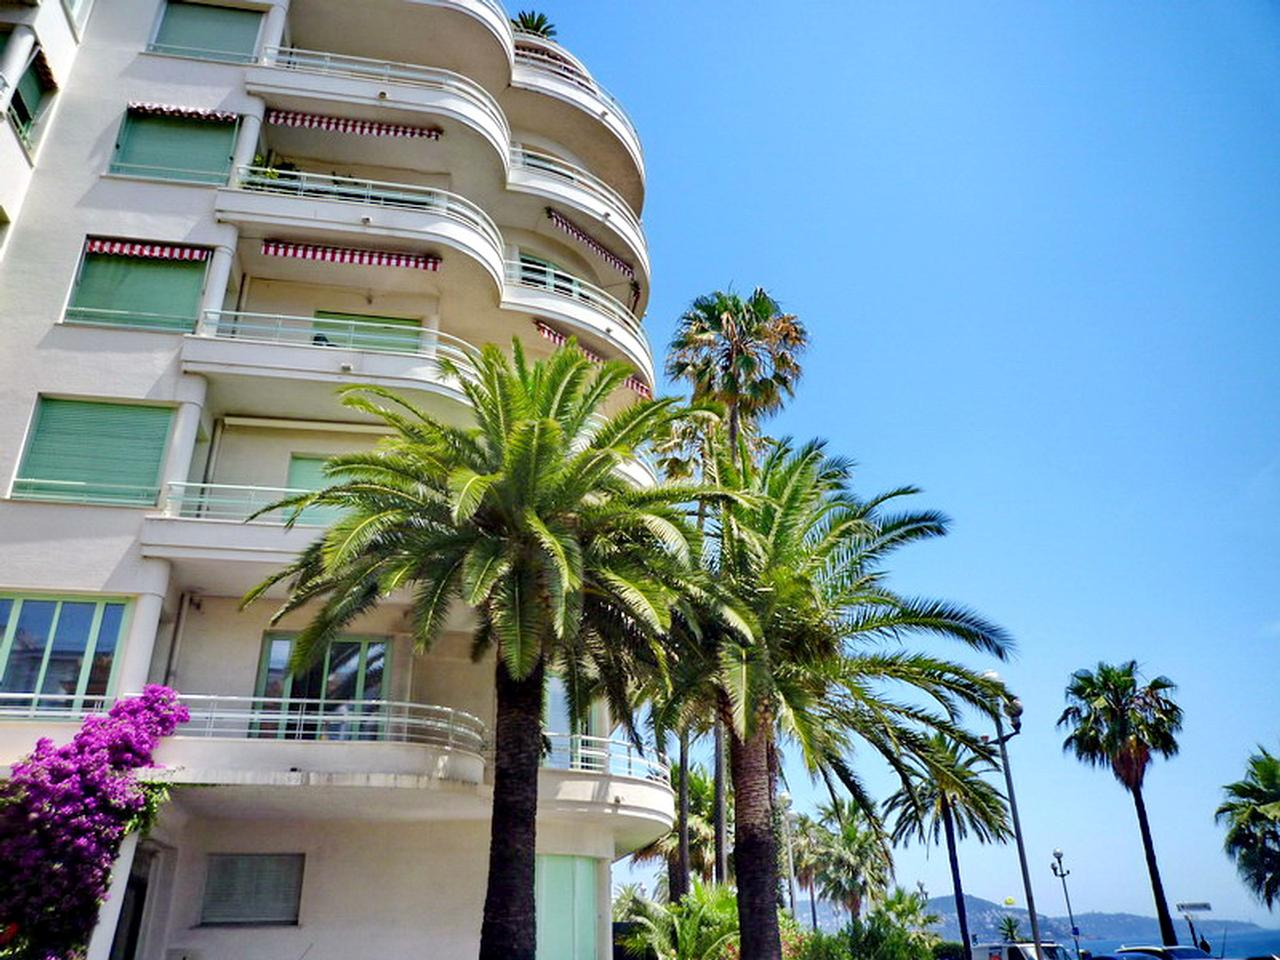 Immobilier nice vue mer appartement nice appartement vue mer a vendre sur la - Aparte immobilier nice ...